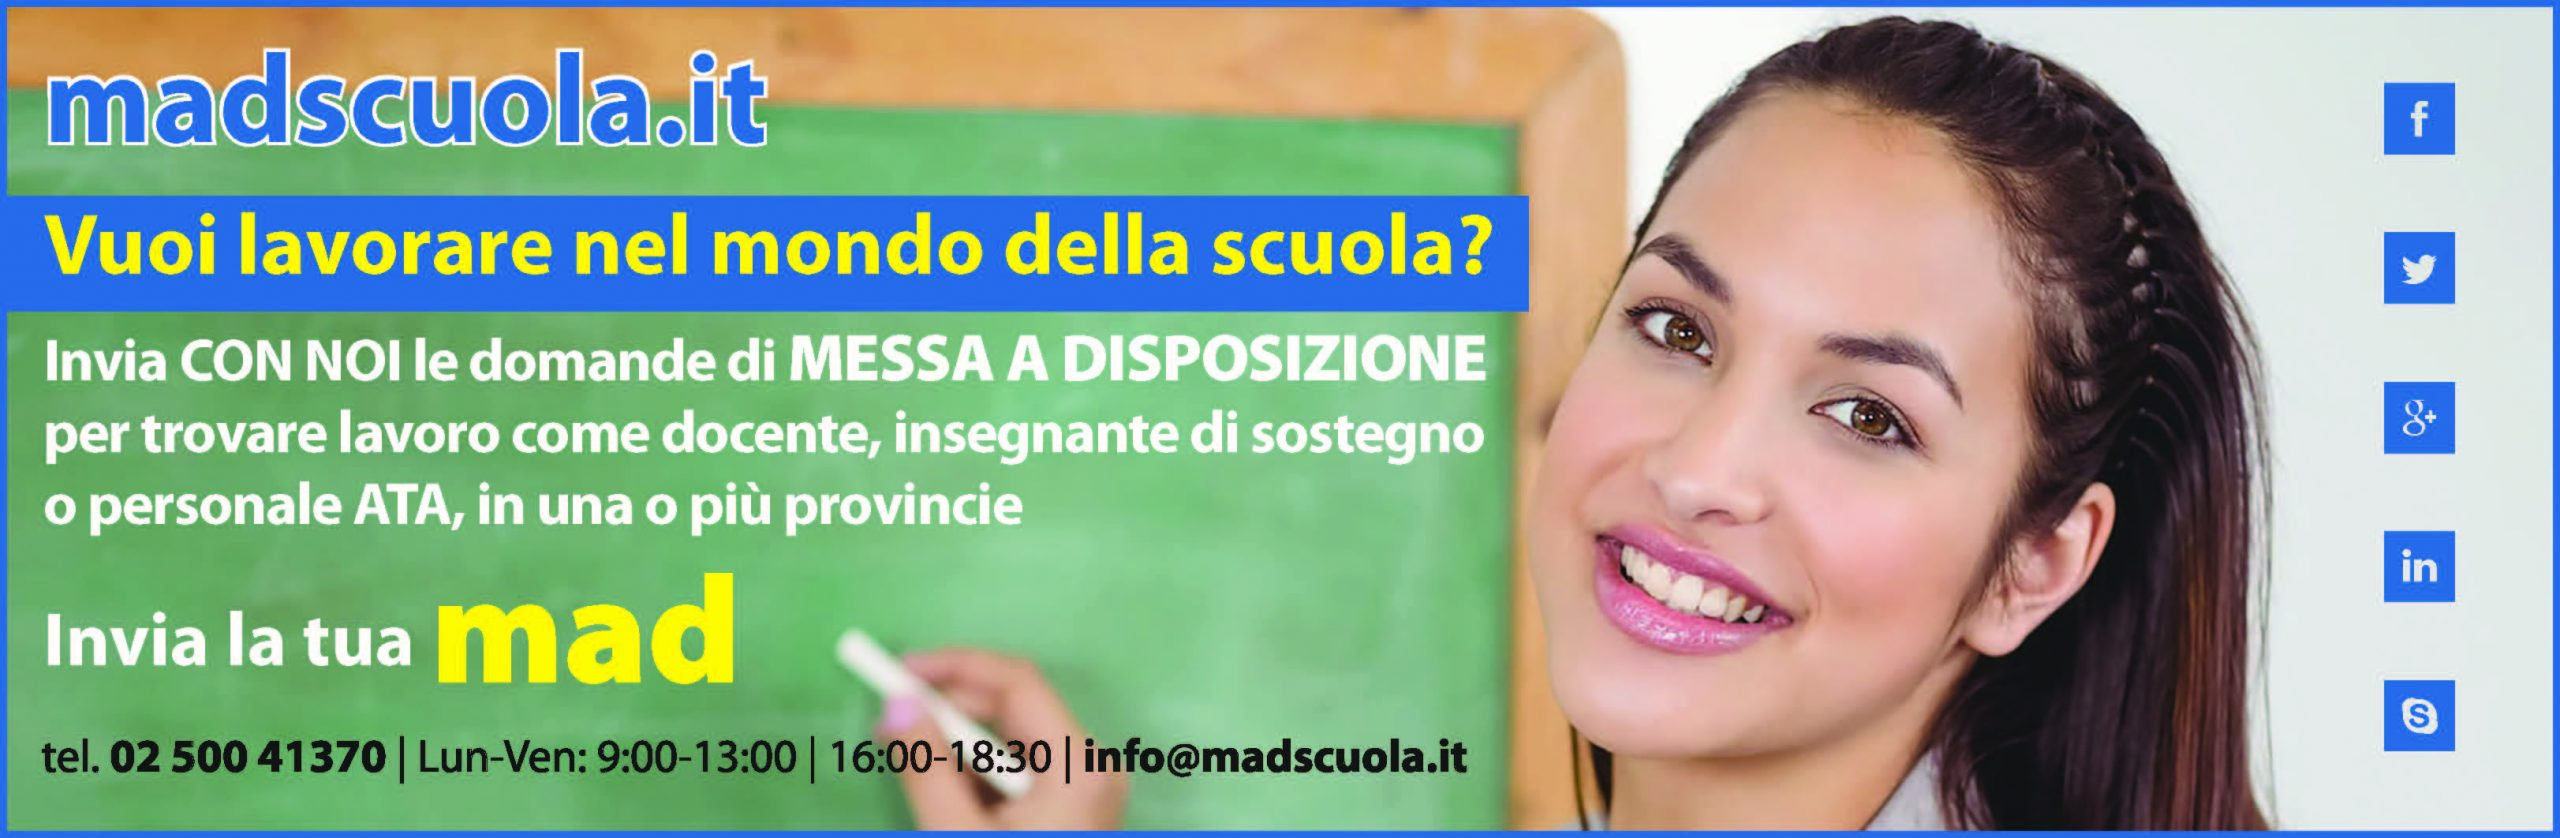 madscuola.it portale invio mad online